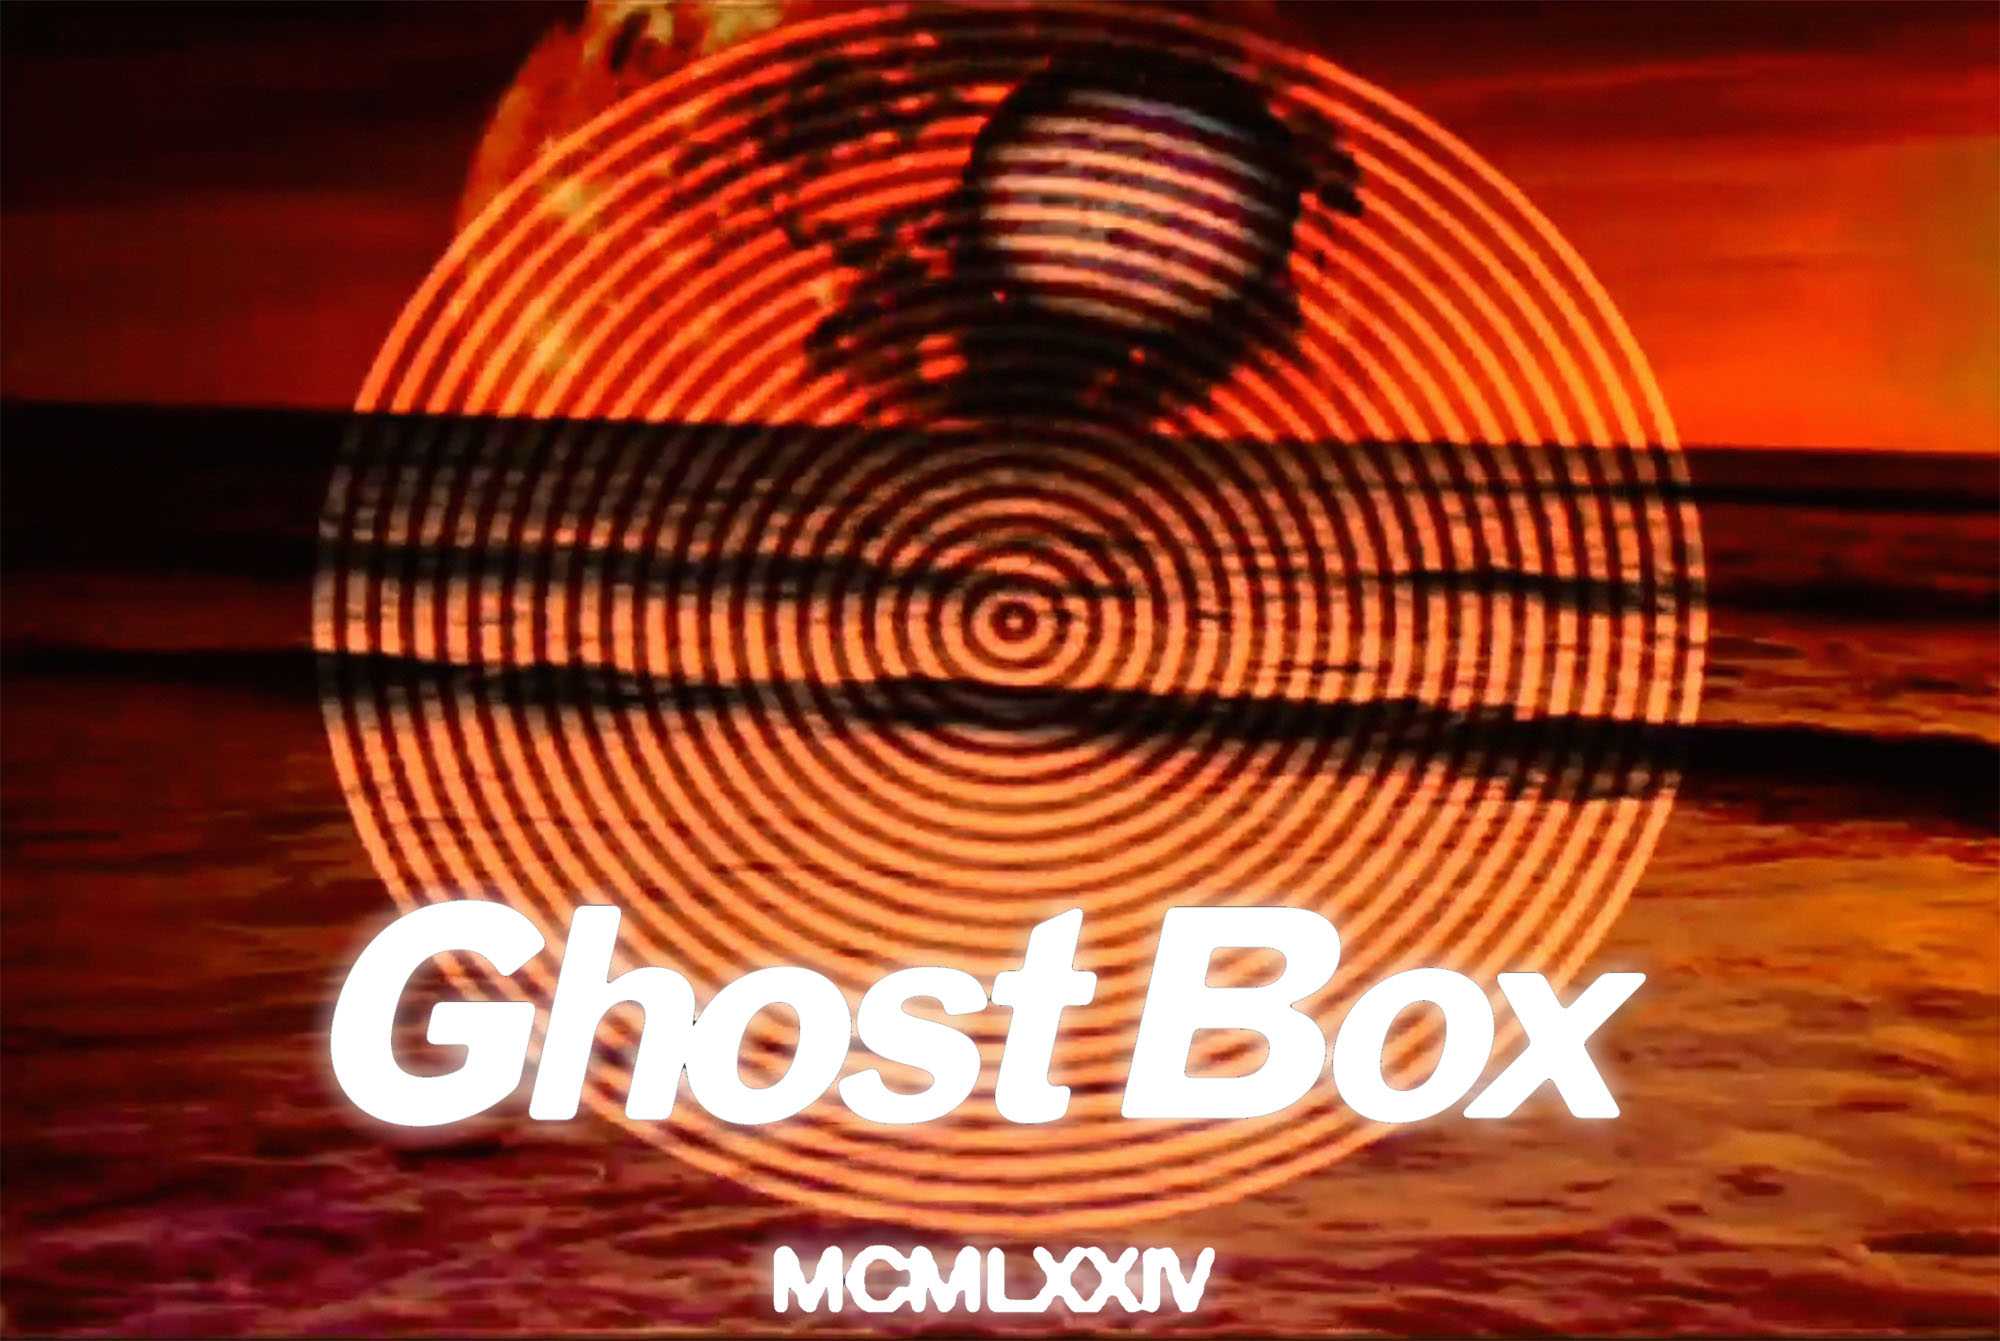 Guide to Ghost Box